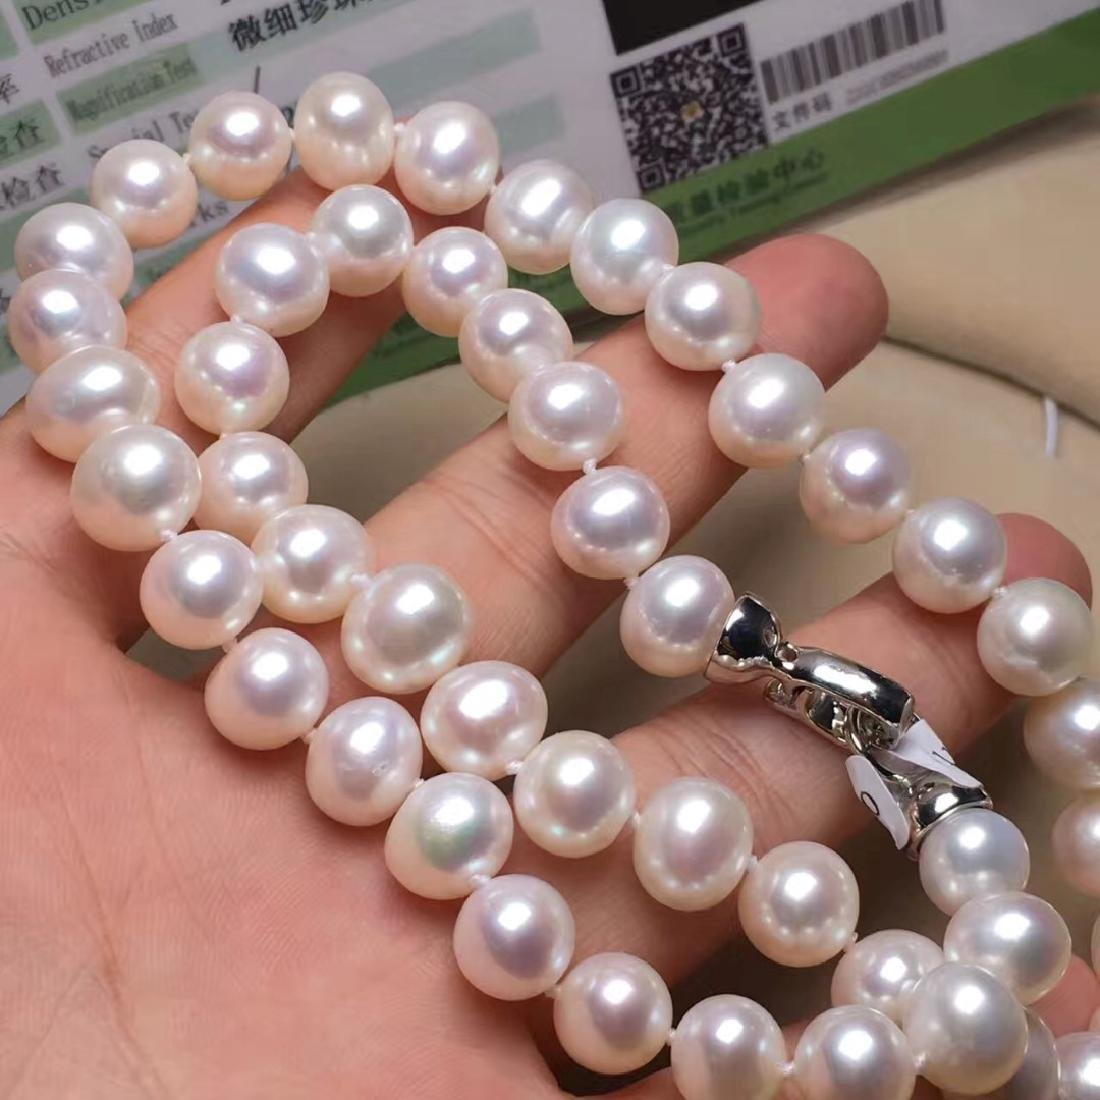 Natural Pearl with Certificate in Original Box - 4